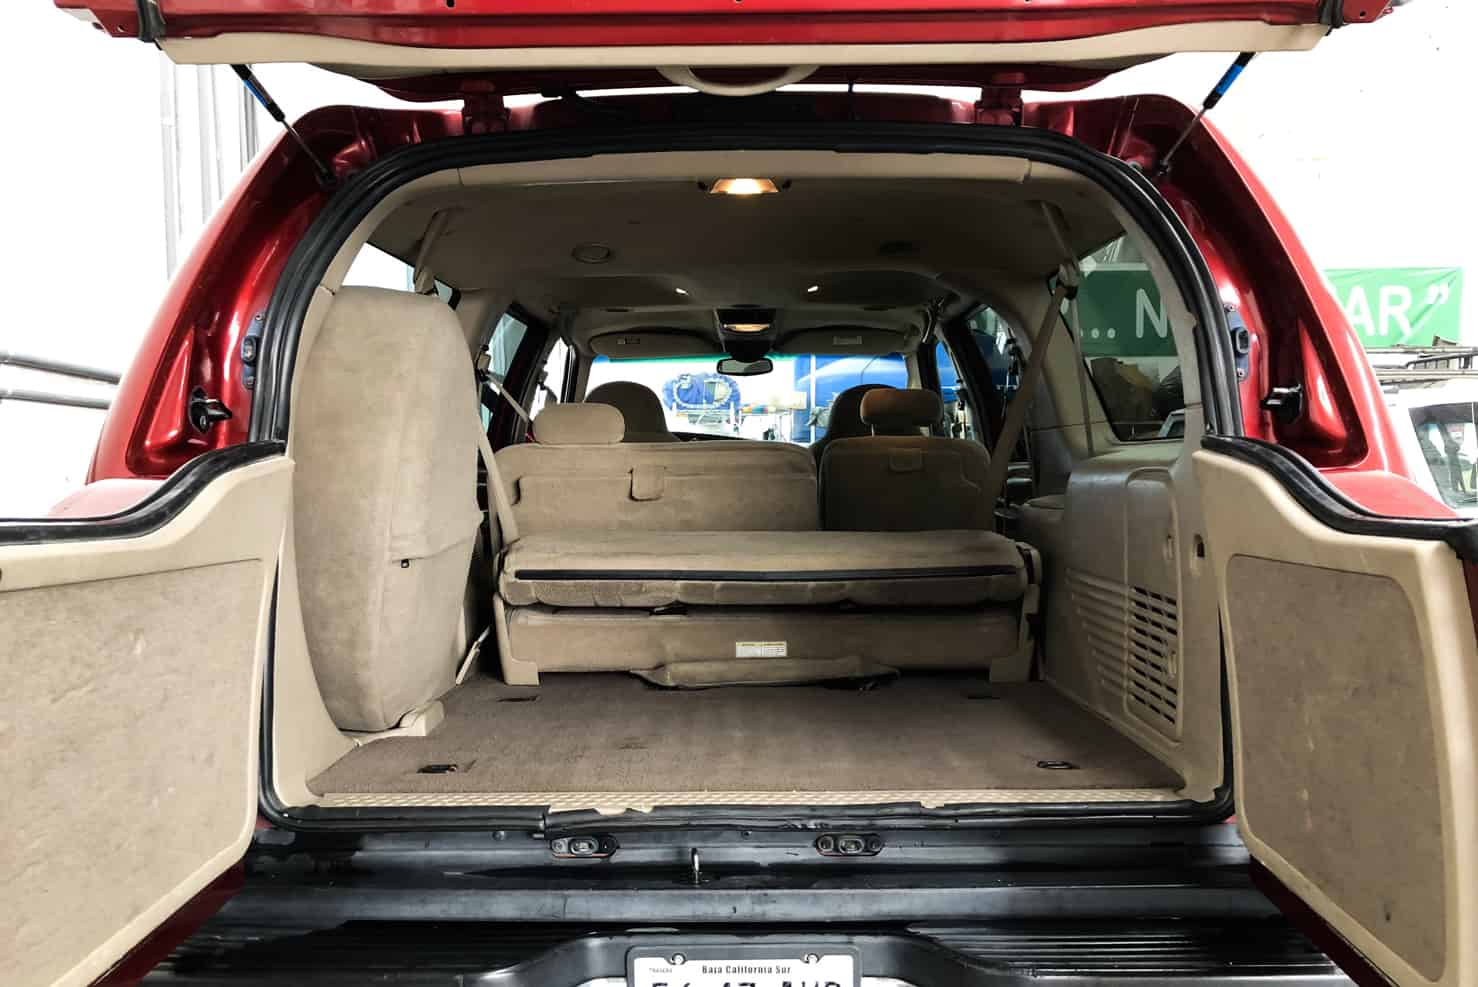 Ford Excursion 4x4 Suvs Full Sized Bbb Rent A Car